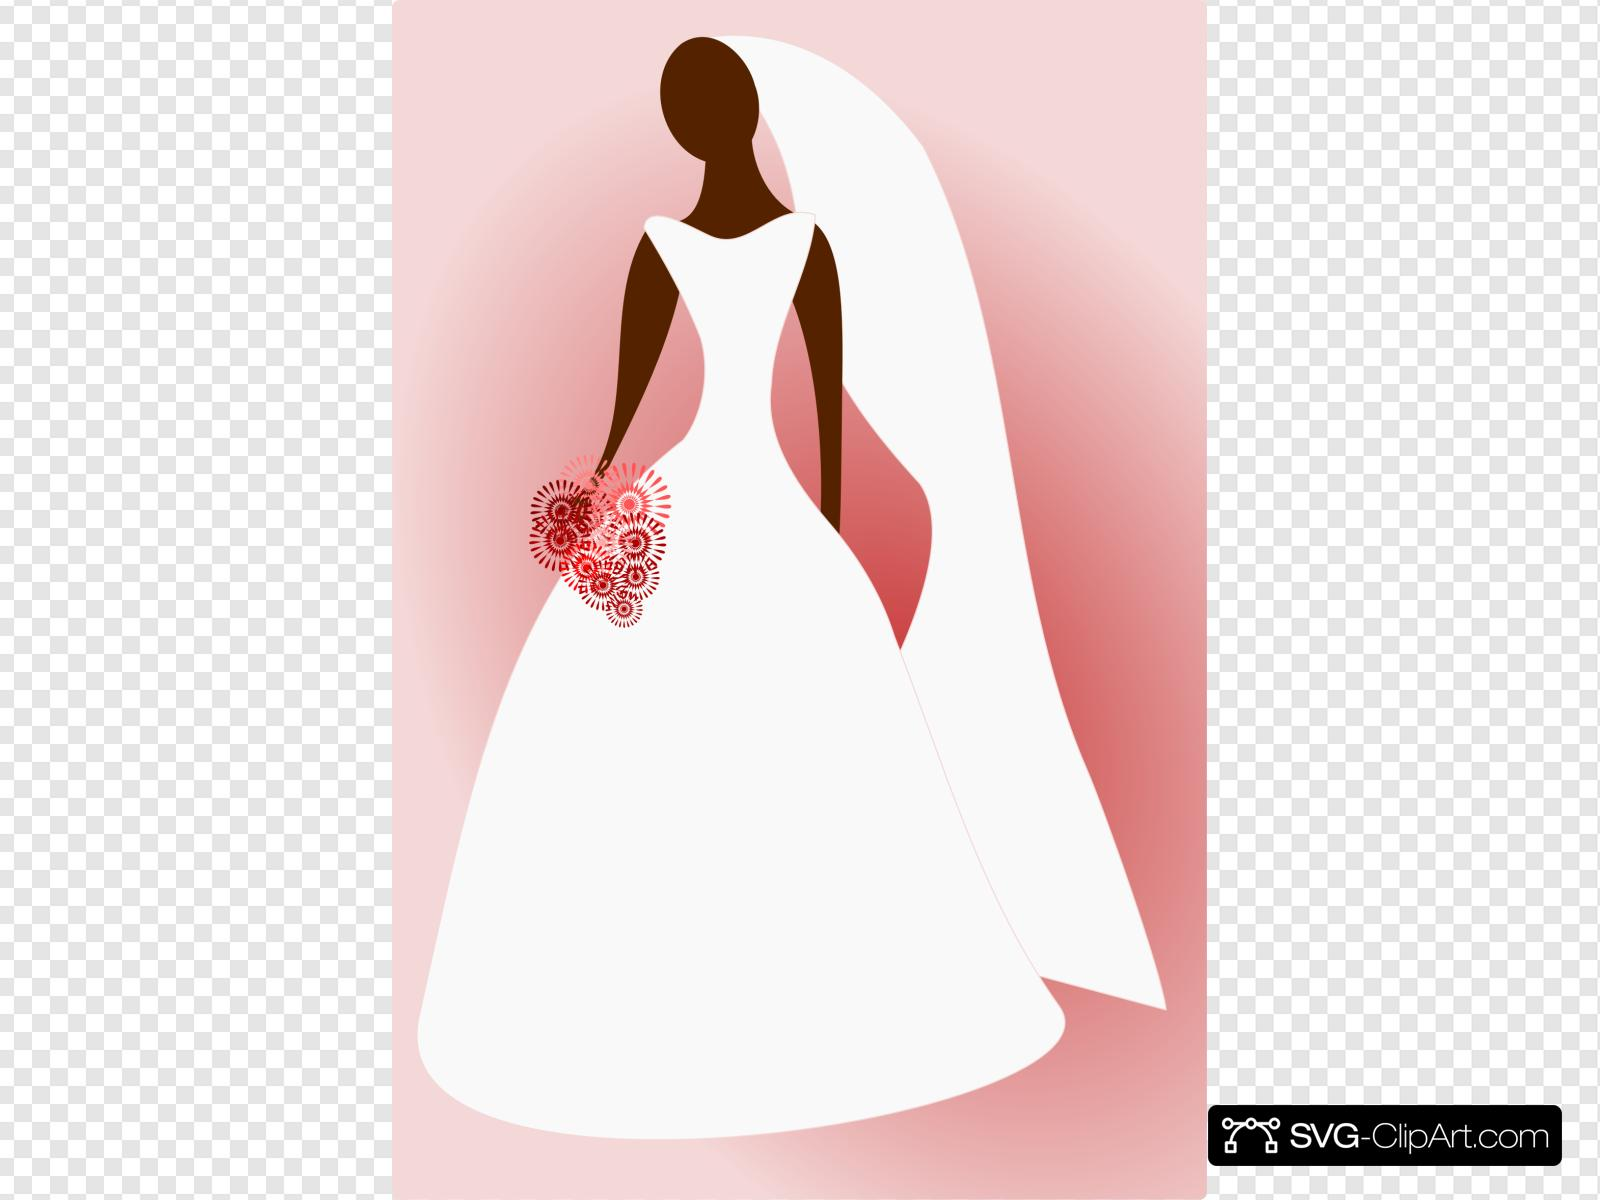 Bride In Wedding Dress Clip art, Icon and SVG.